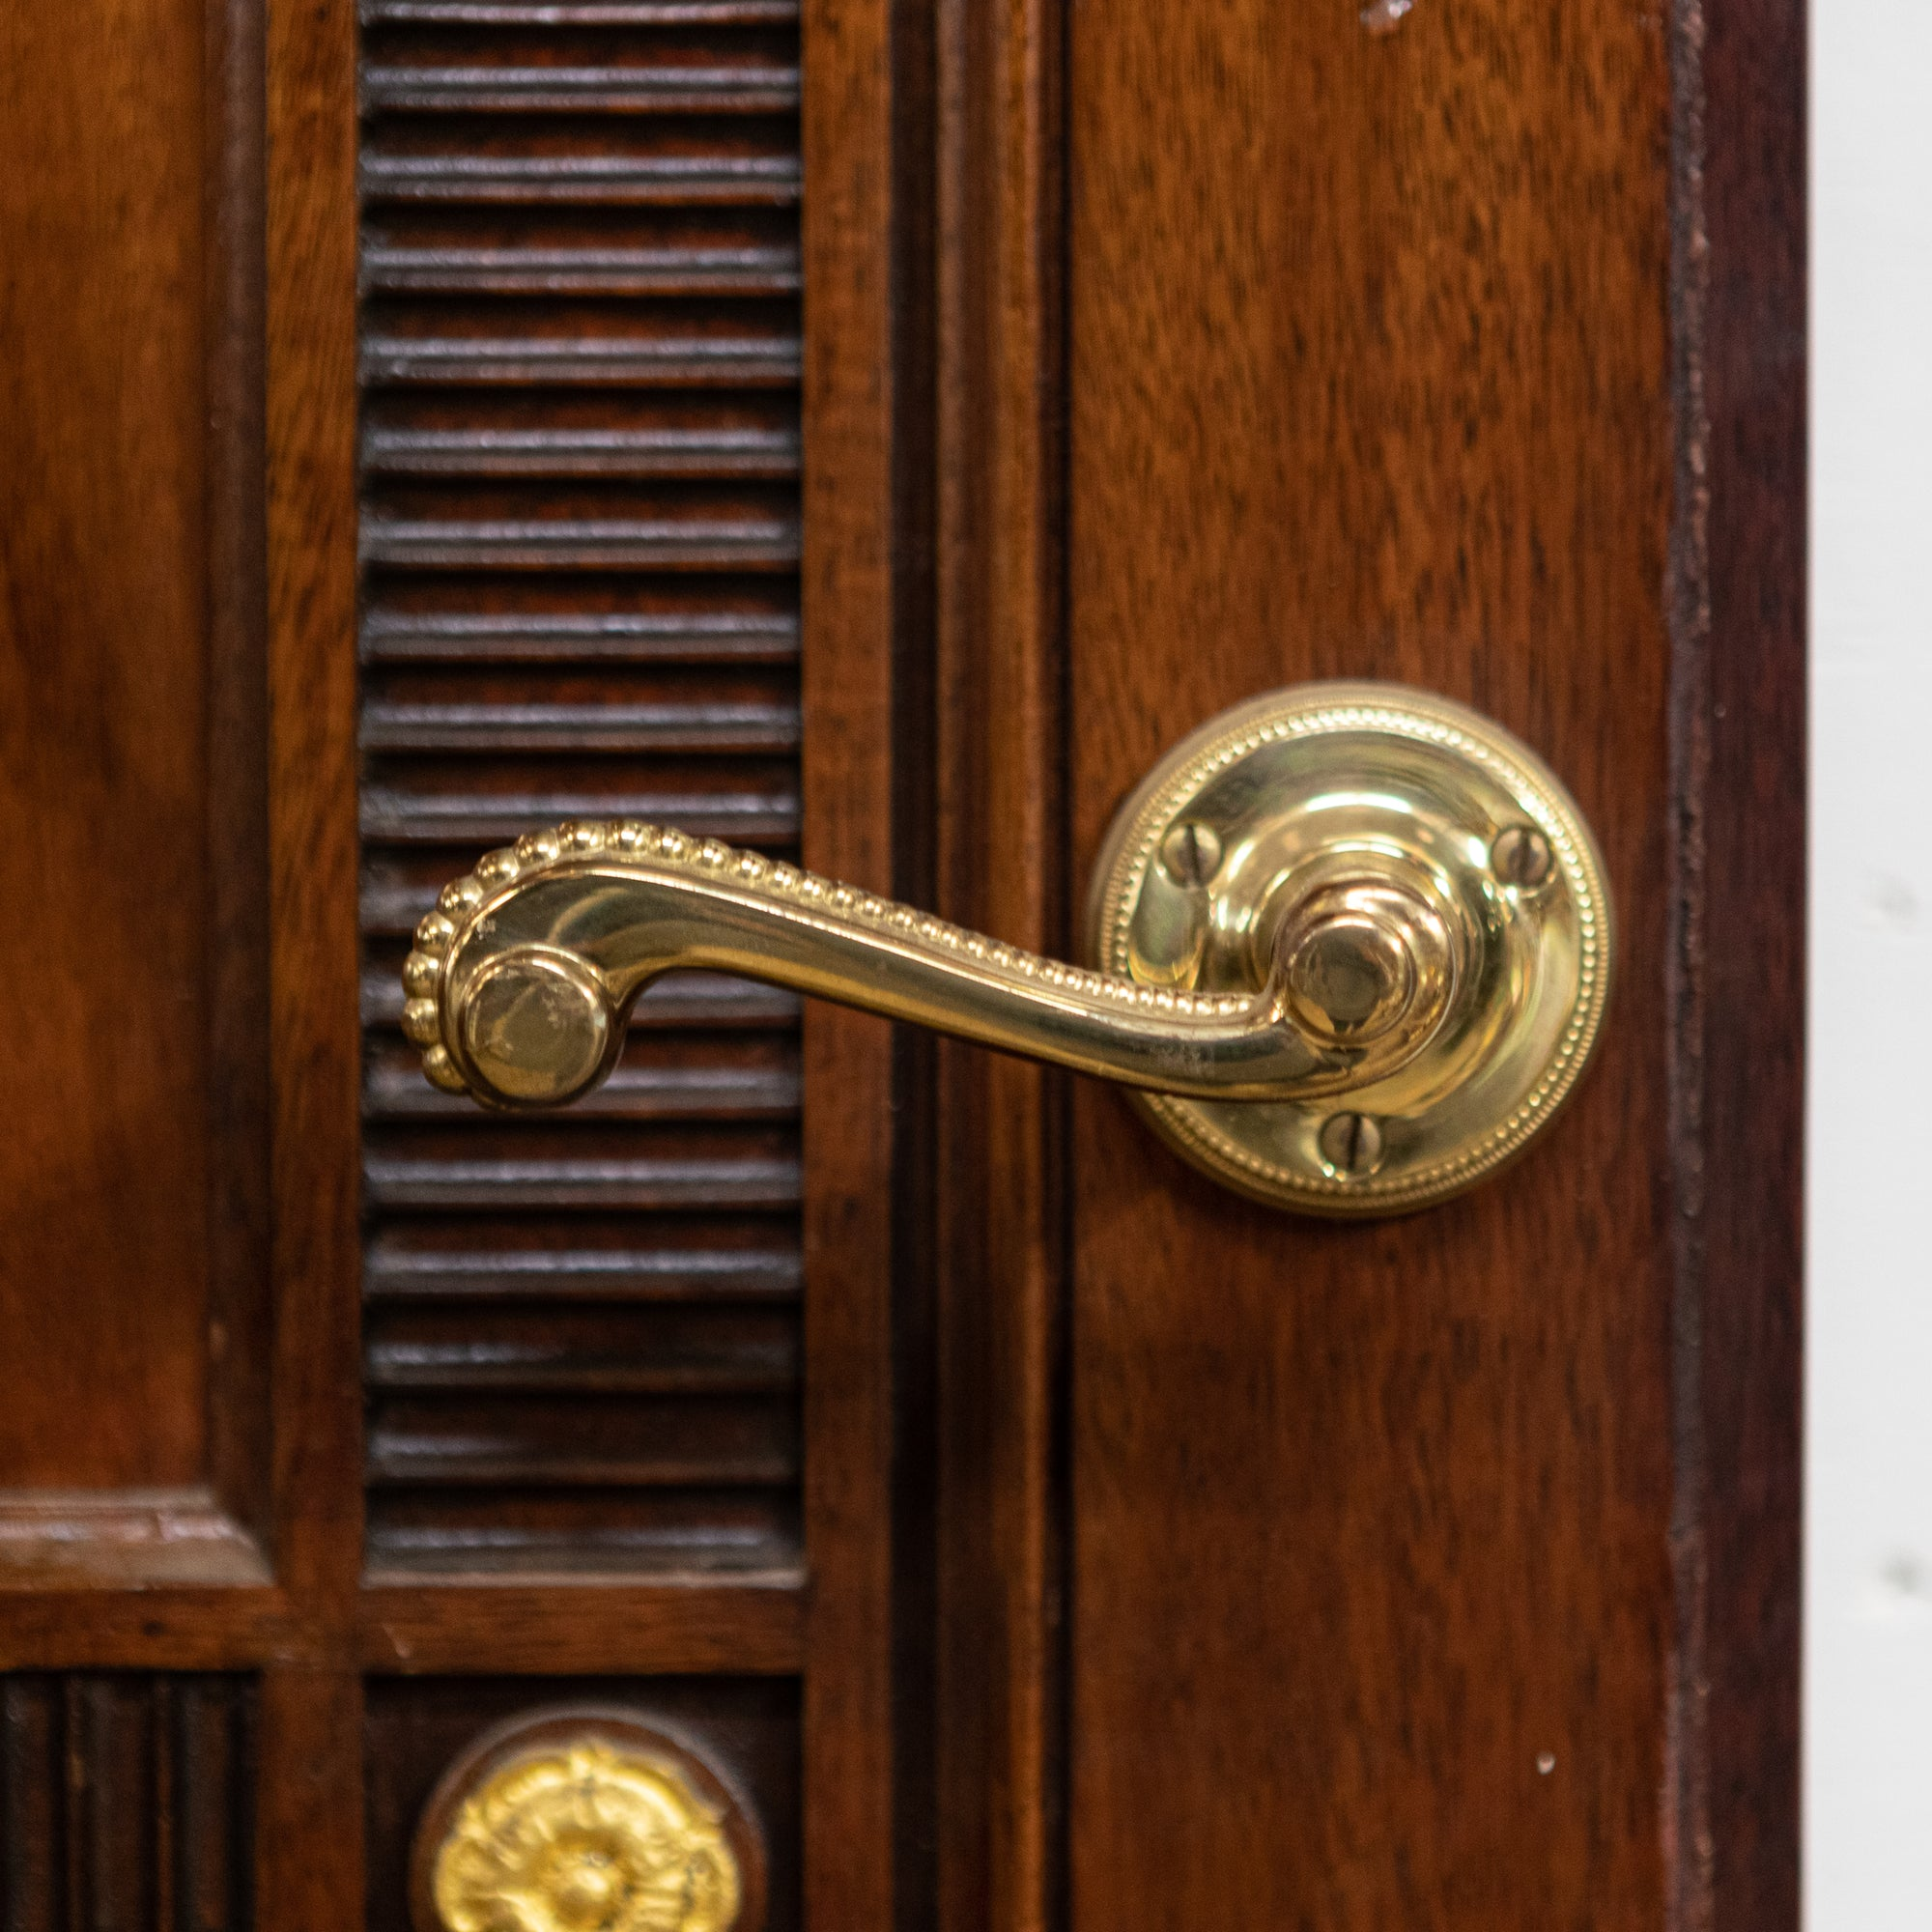 Ornate Carved Mahogany Doors Reclaimed From Graff London | The Architectural Forum